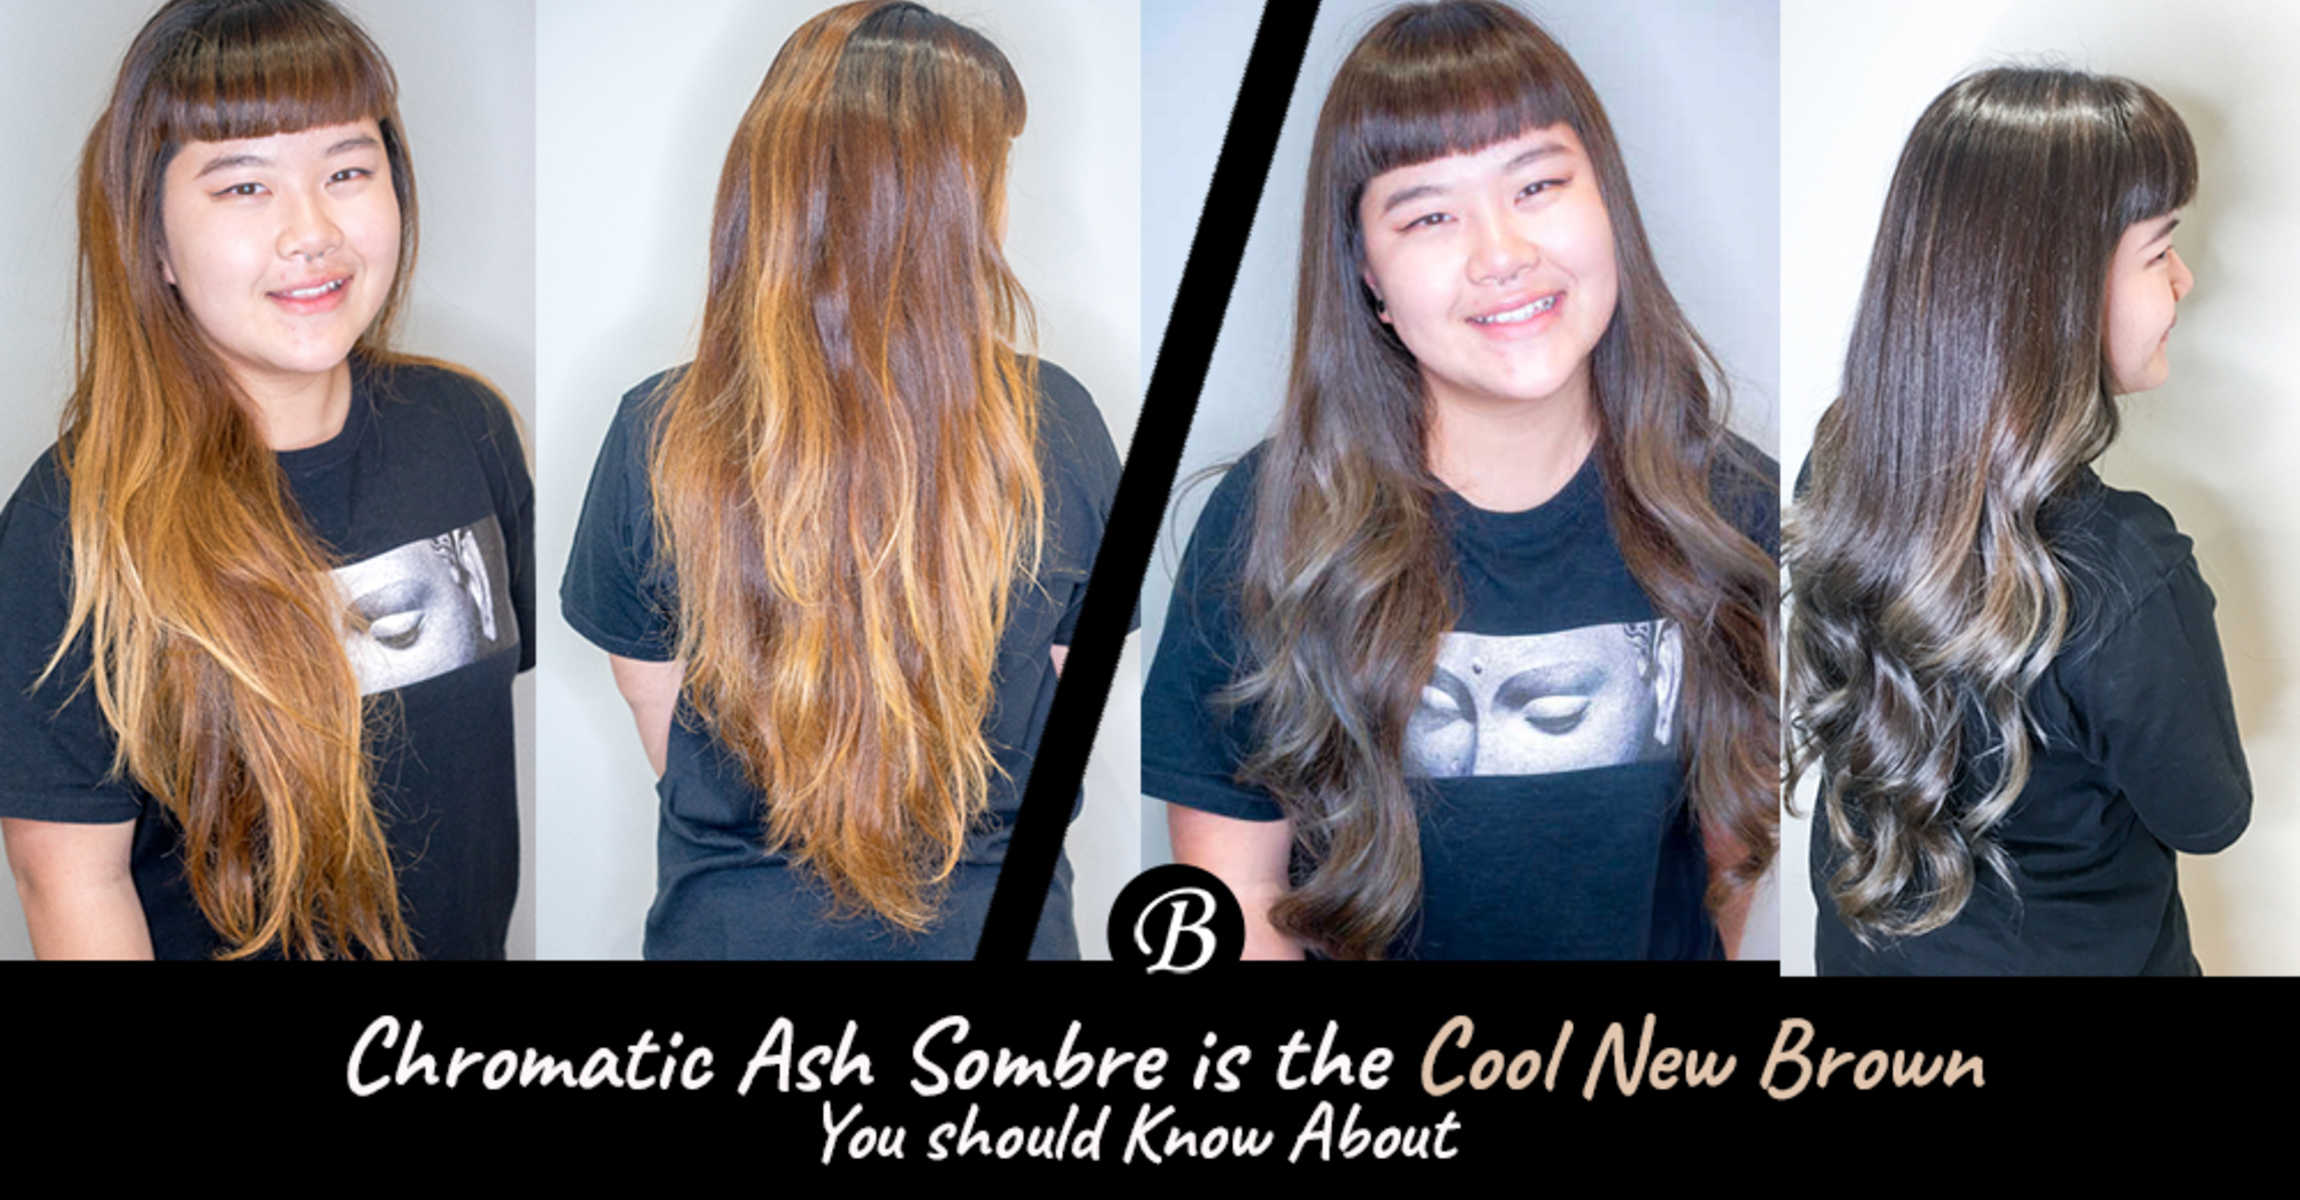 Student H Got Her Chromatic Ash Sombre Hair Done By Ayumi Hamasaki's Stylist from Threes Japanese Hair Salon